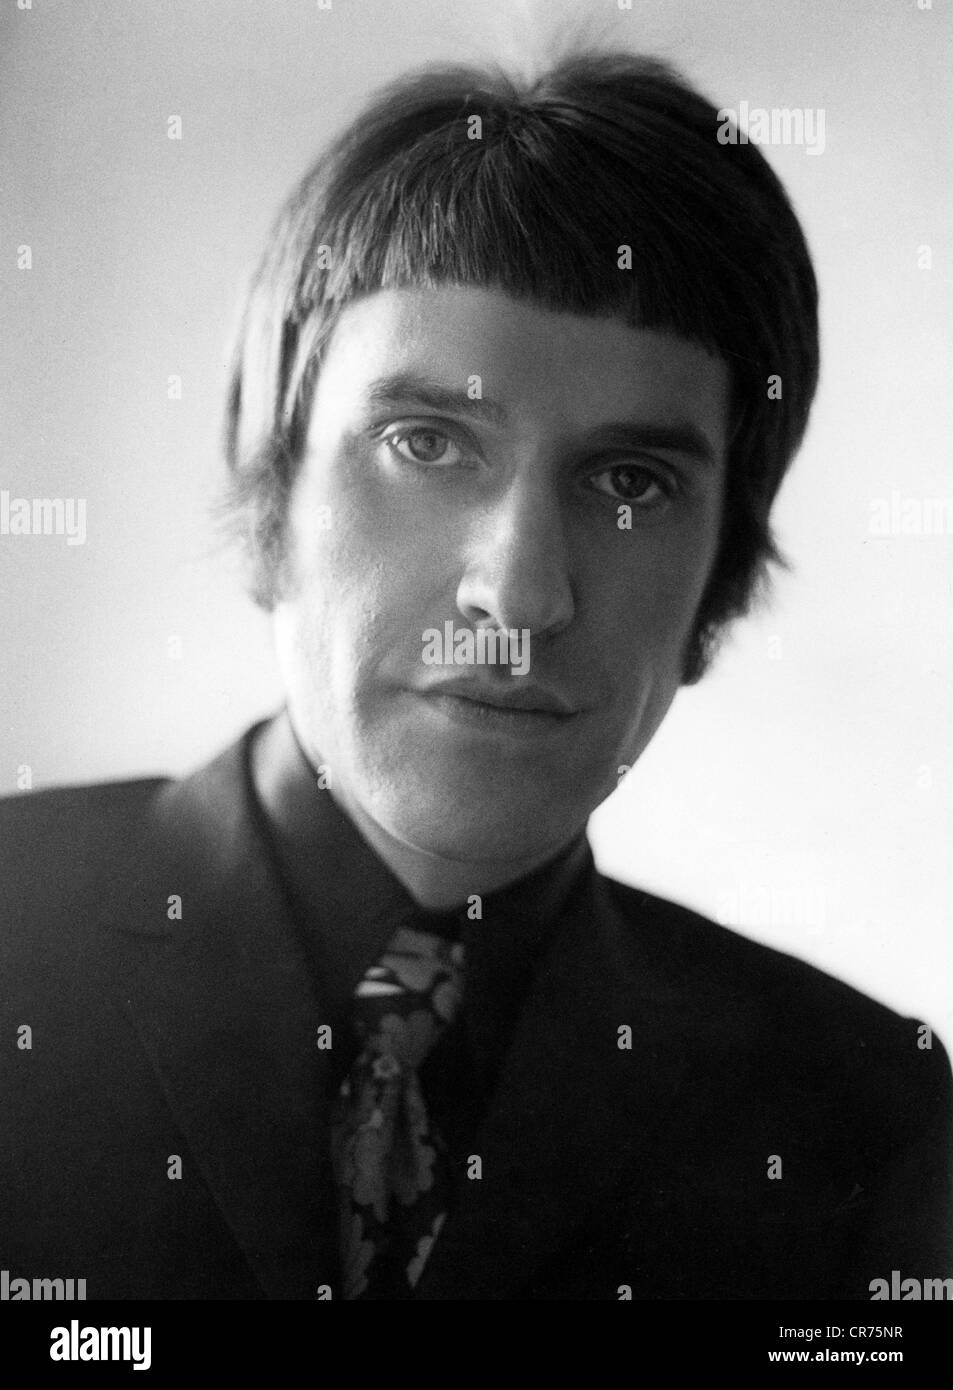 Kinks, The, British music band, member Peter Quaife, middle of 1960s, , Additional-Rights-Clearances-NA - Stock Image